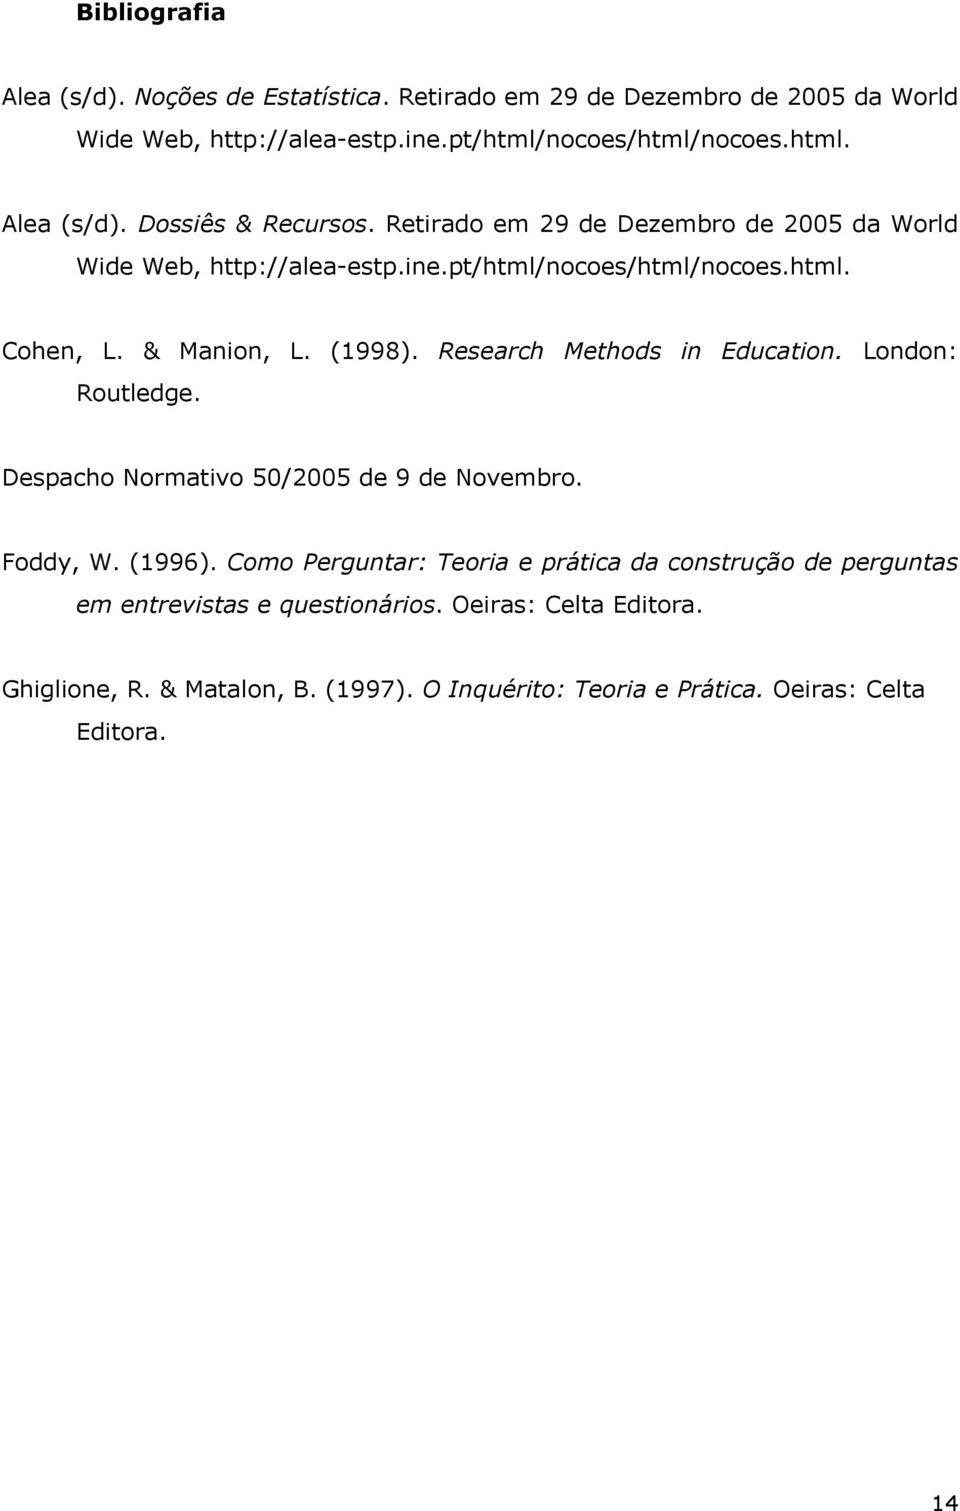 Research Methods in Education. London: Routledge. Despacho Normativo 50/2005 de 9 de Novembro. Foddy, W. (1996).